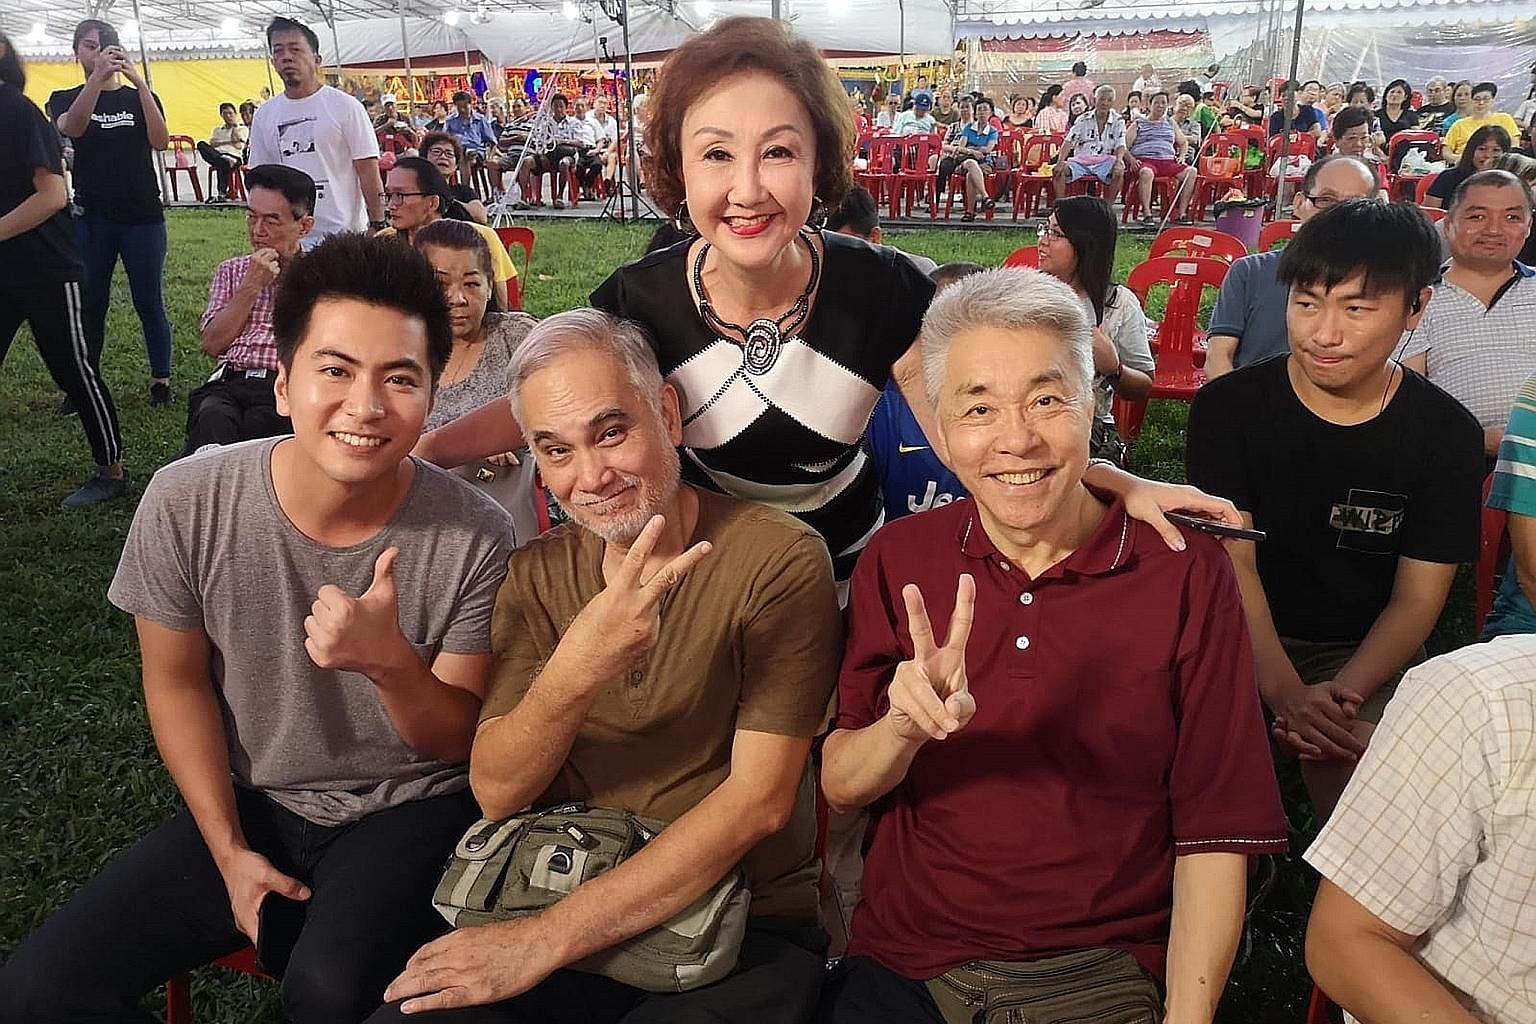 Long-running Channel 8 drama Old Is Gold stars senior actors Zhu Houren (front centre), Chen Shucheng (front right) and Lin Ruping (back) alongside younger ones such as Xu Bin (far left).